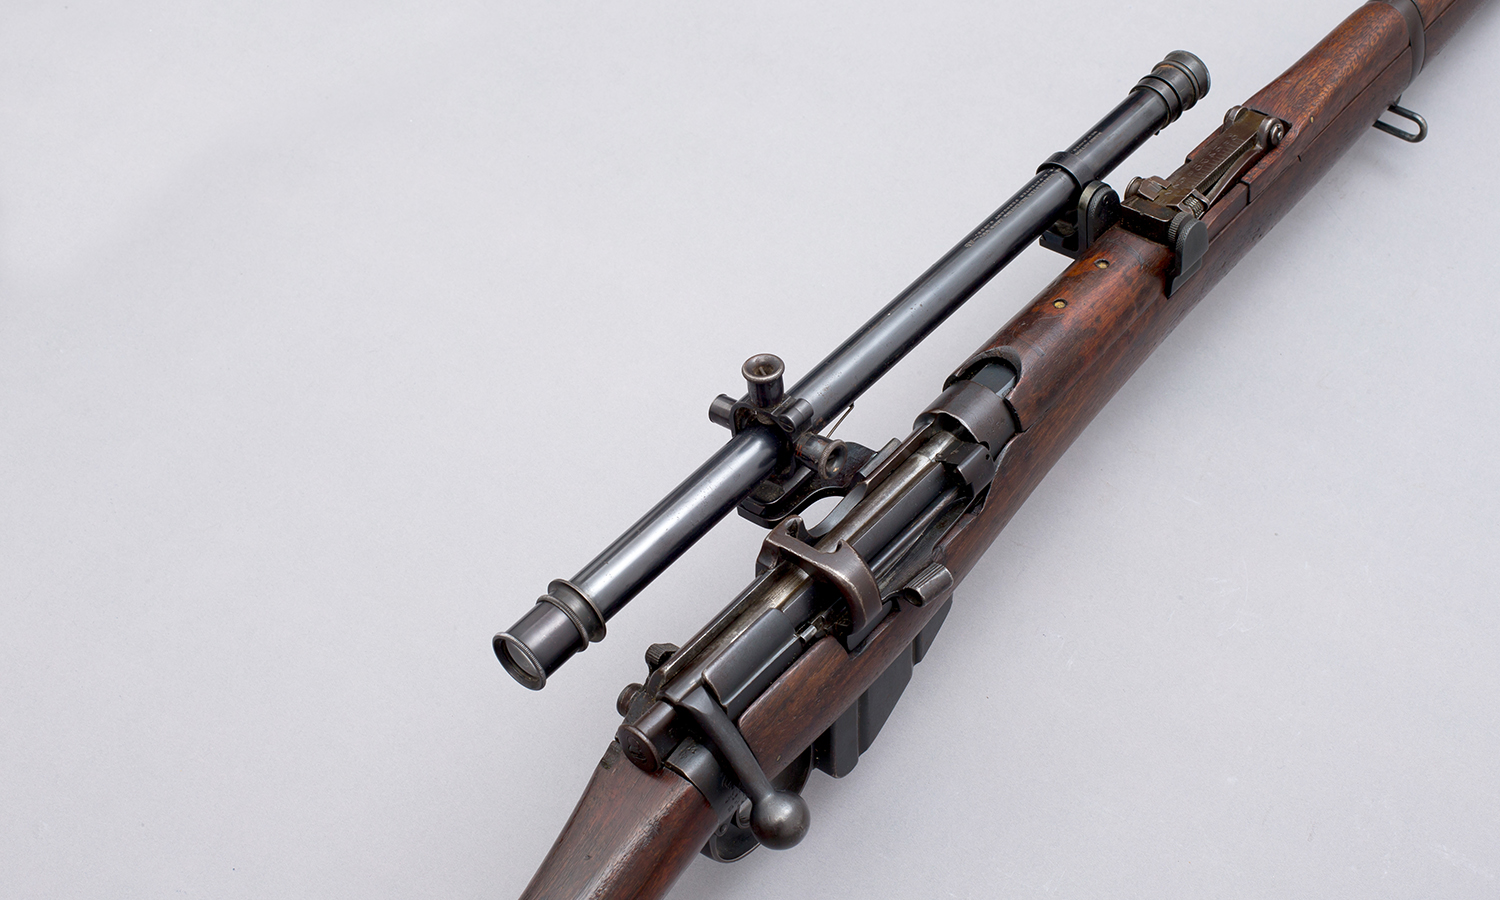 Lee-Enfield SMLE A5 Telescopic Scope 3